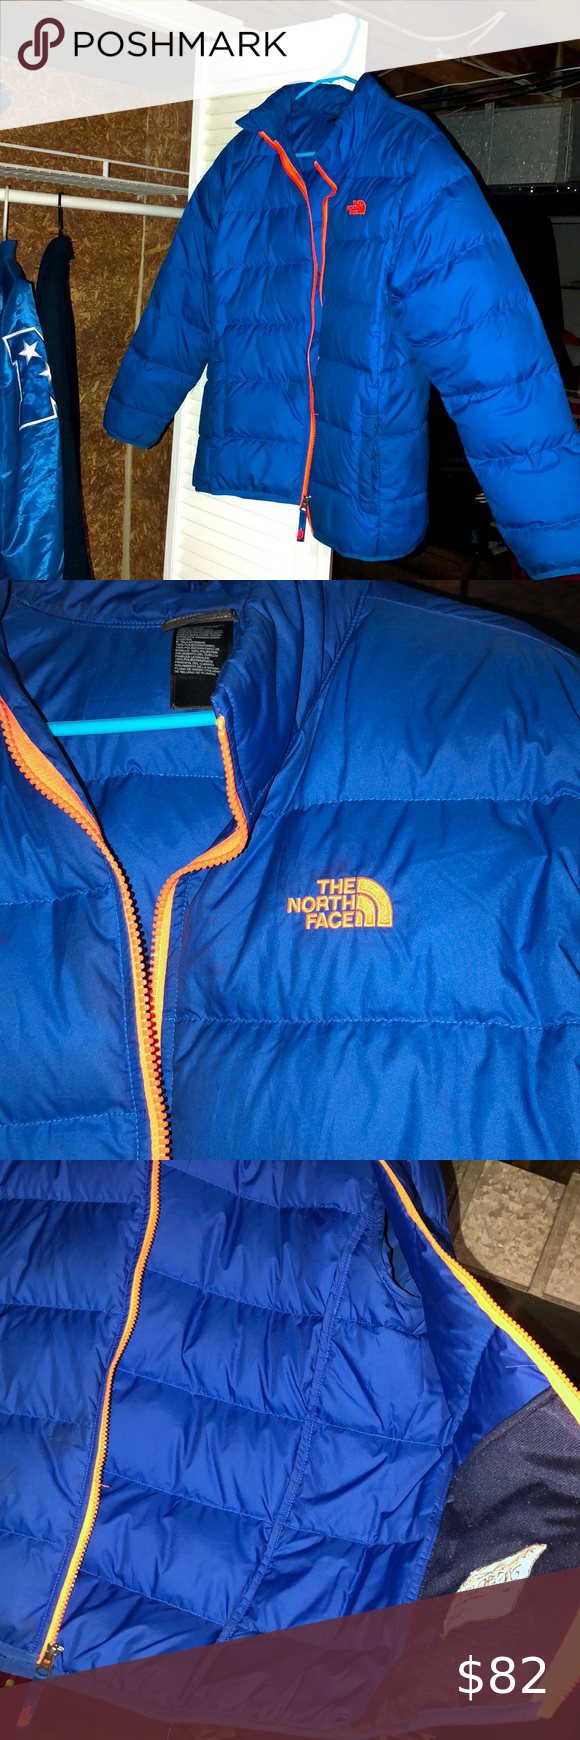 Boys North Face Coat In 2020 North Face Coat North Face Jacket The North Face [ 1740 x 580 Pixel ]